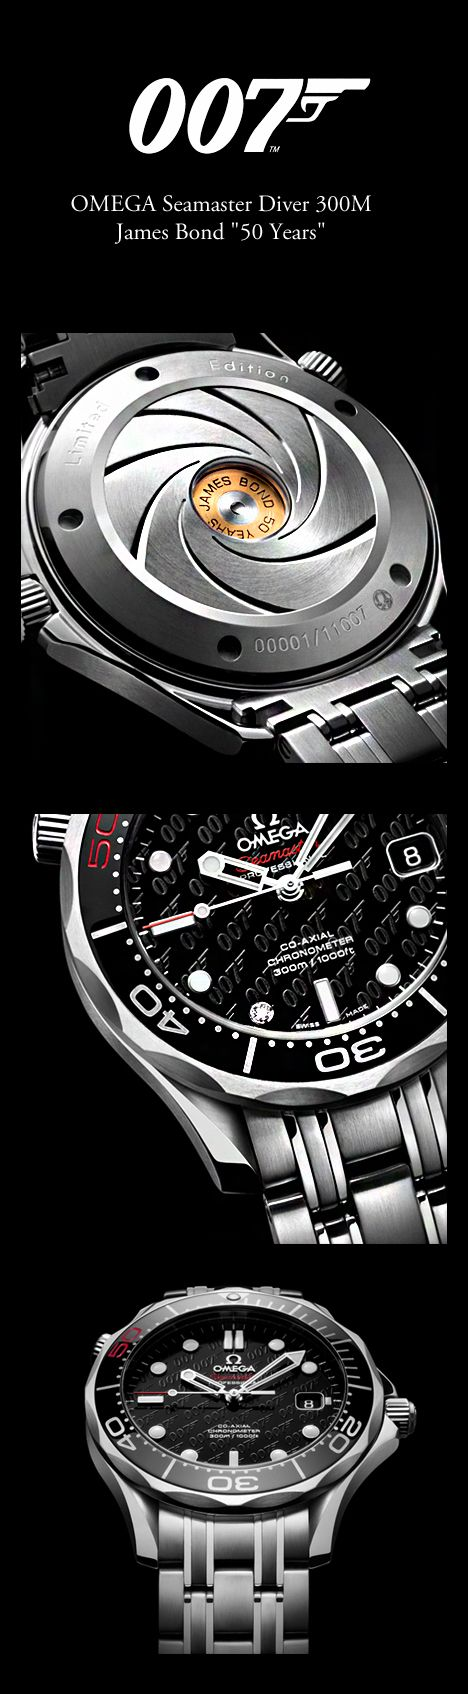 "OMEGA Seamaster Diver 300M James Bond ""50 Years"" https://uk.pinterest.com/925jewelry1/men-watches/pins/"